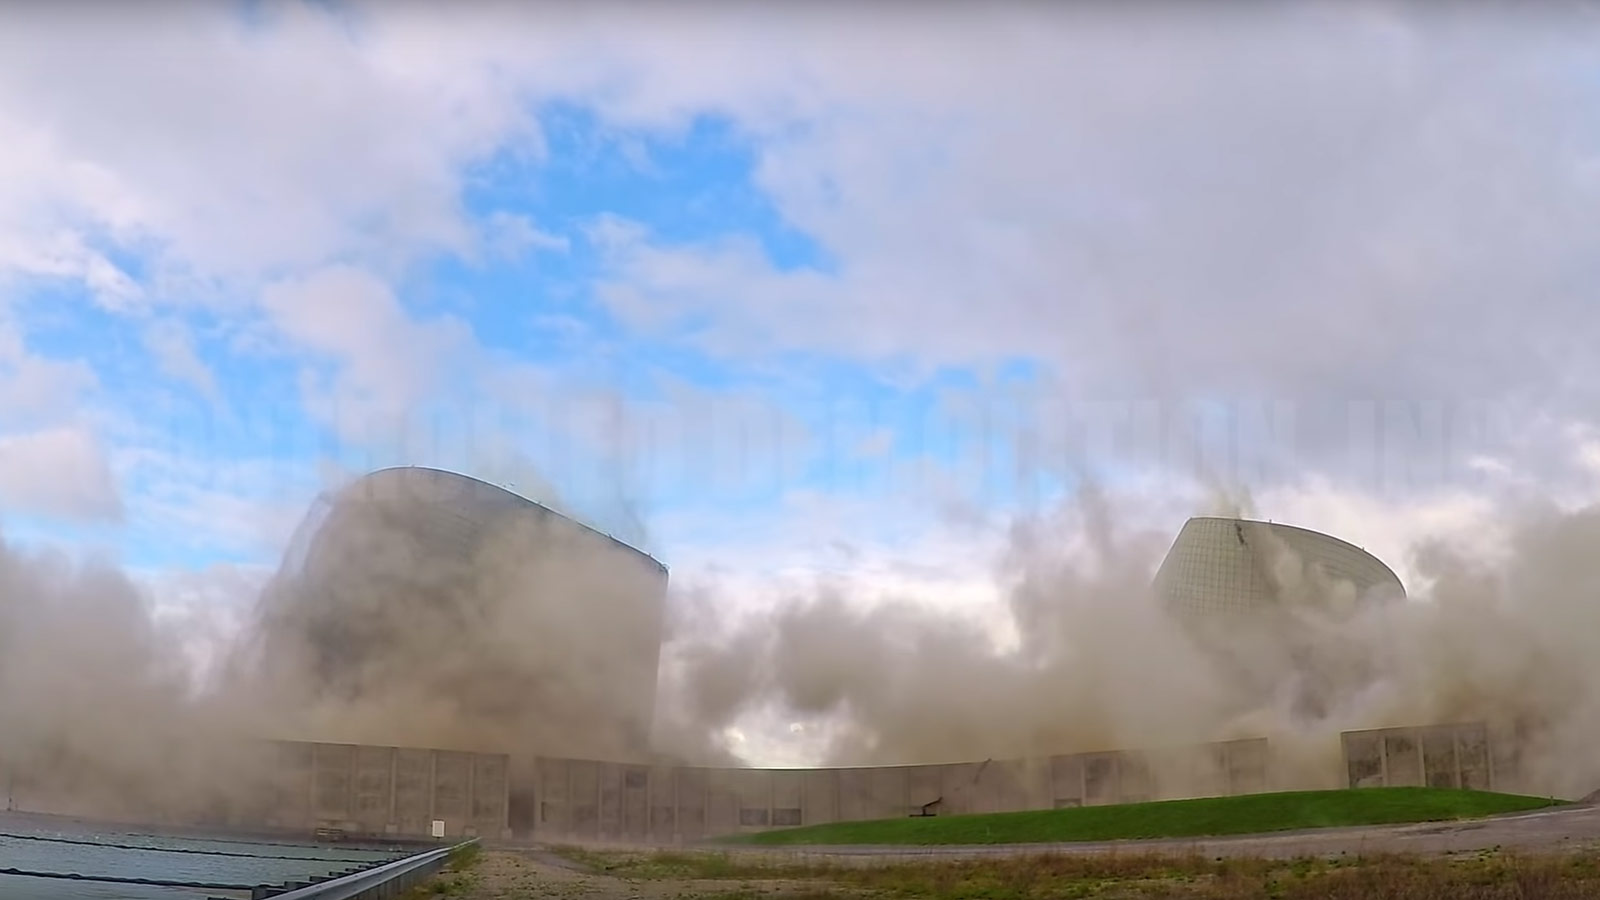 Controlled implosion is a safe and efficient method of demolition